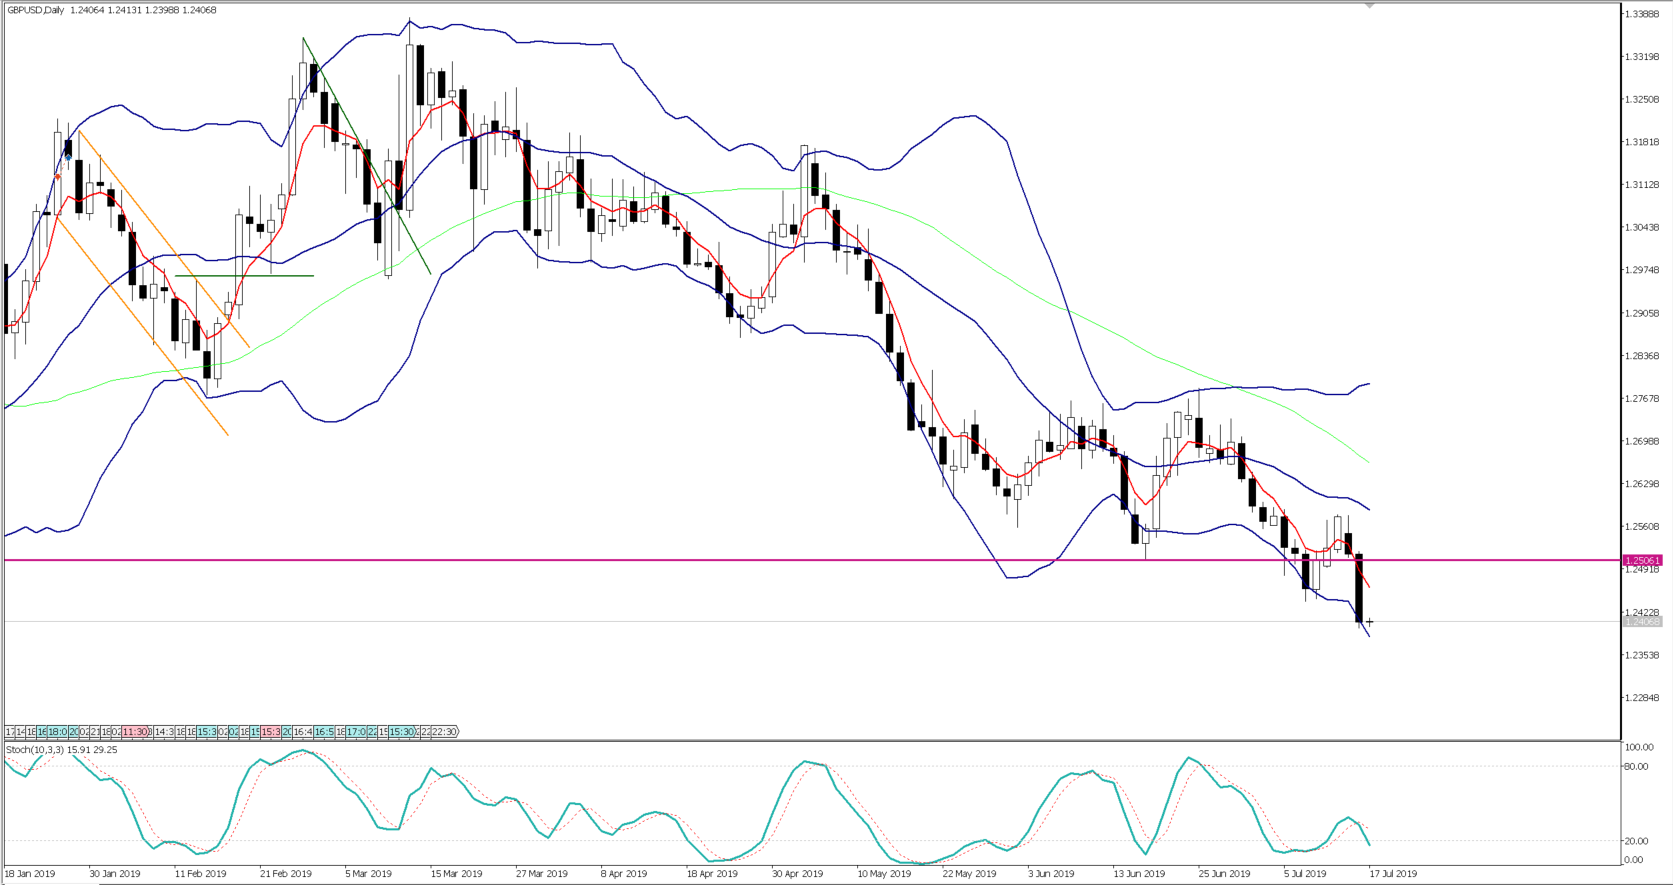 Chart of the Day - July 17, 2019 - GBPUSD daily